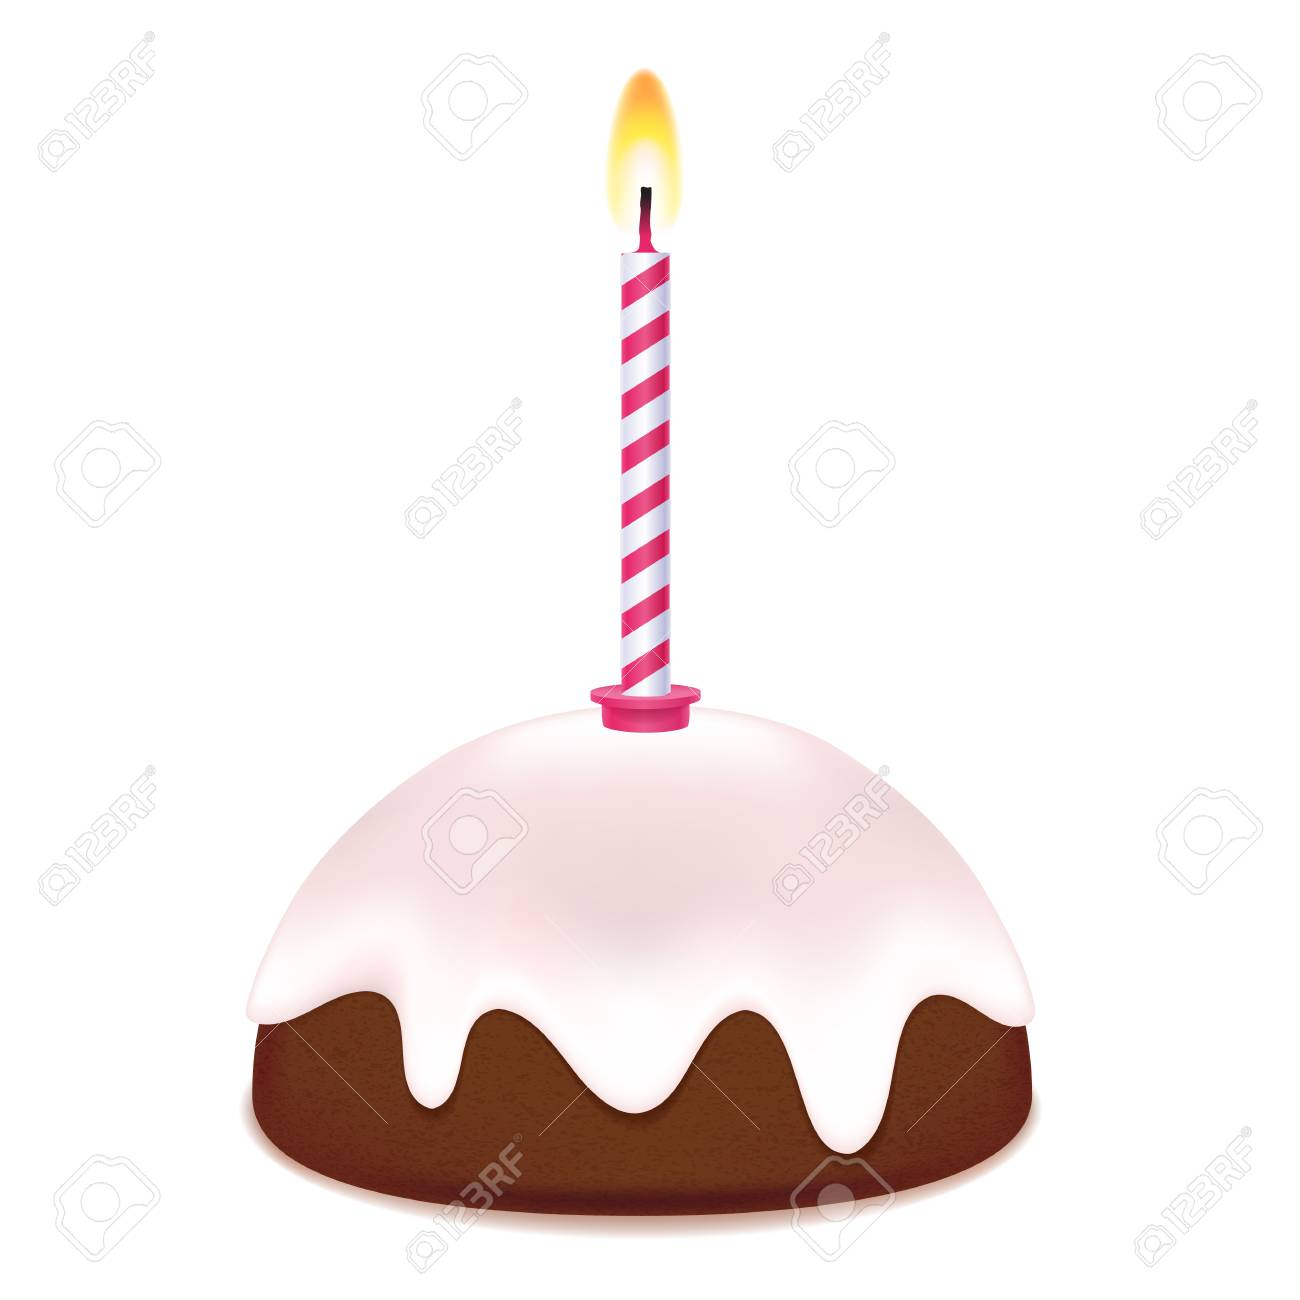 Small Birthday Cake With Candle Sweet Treat Chocolate Frosting On Top Stock Vector